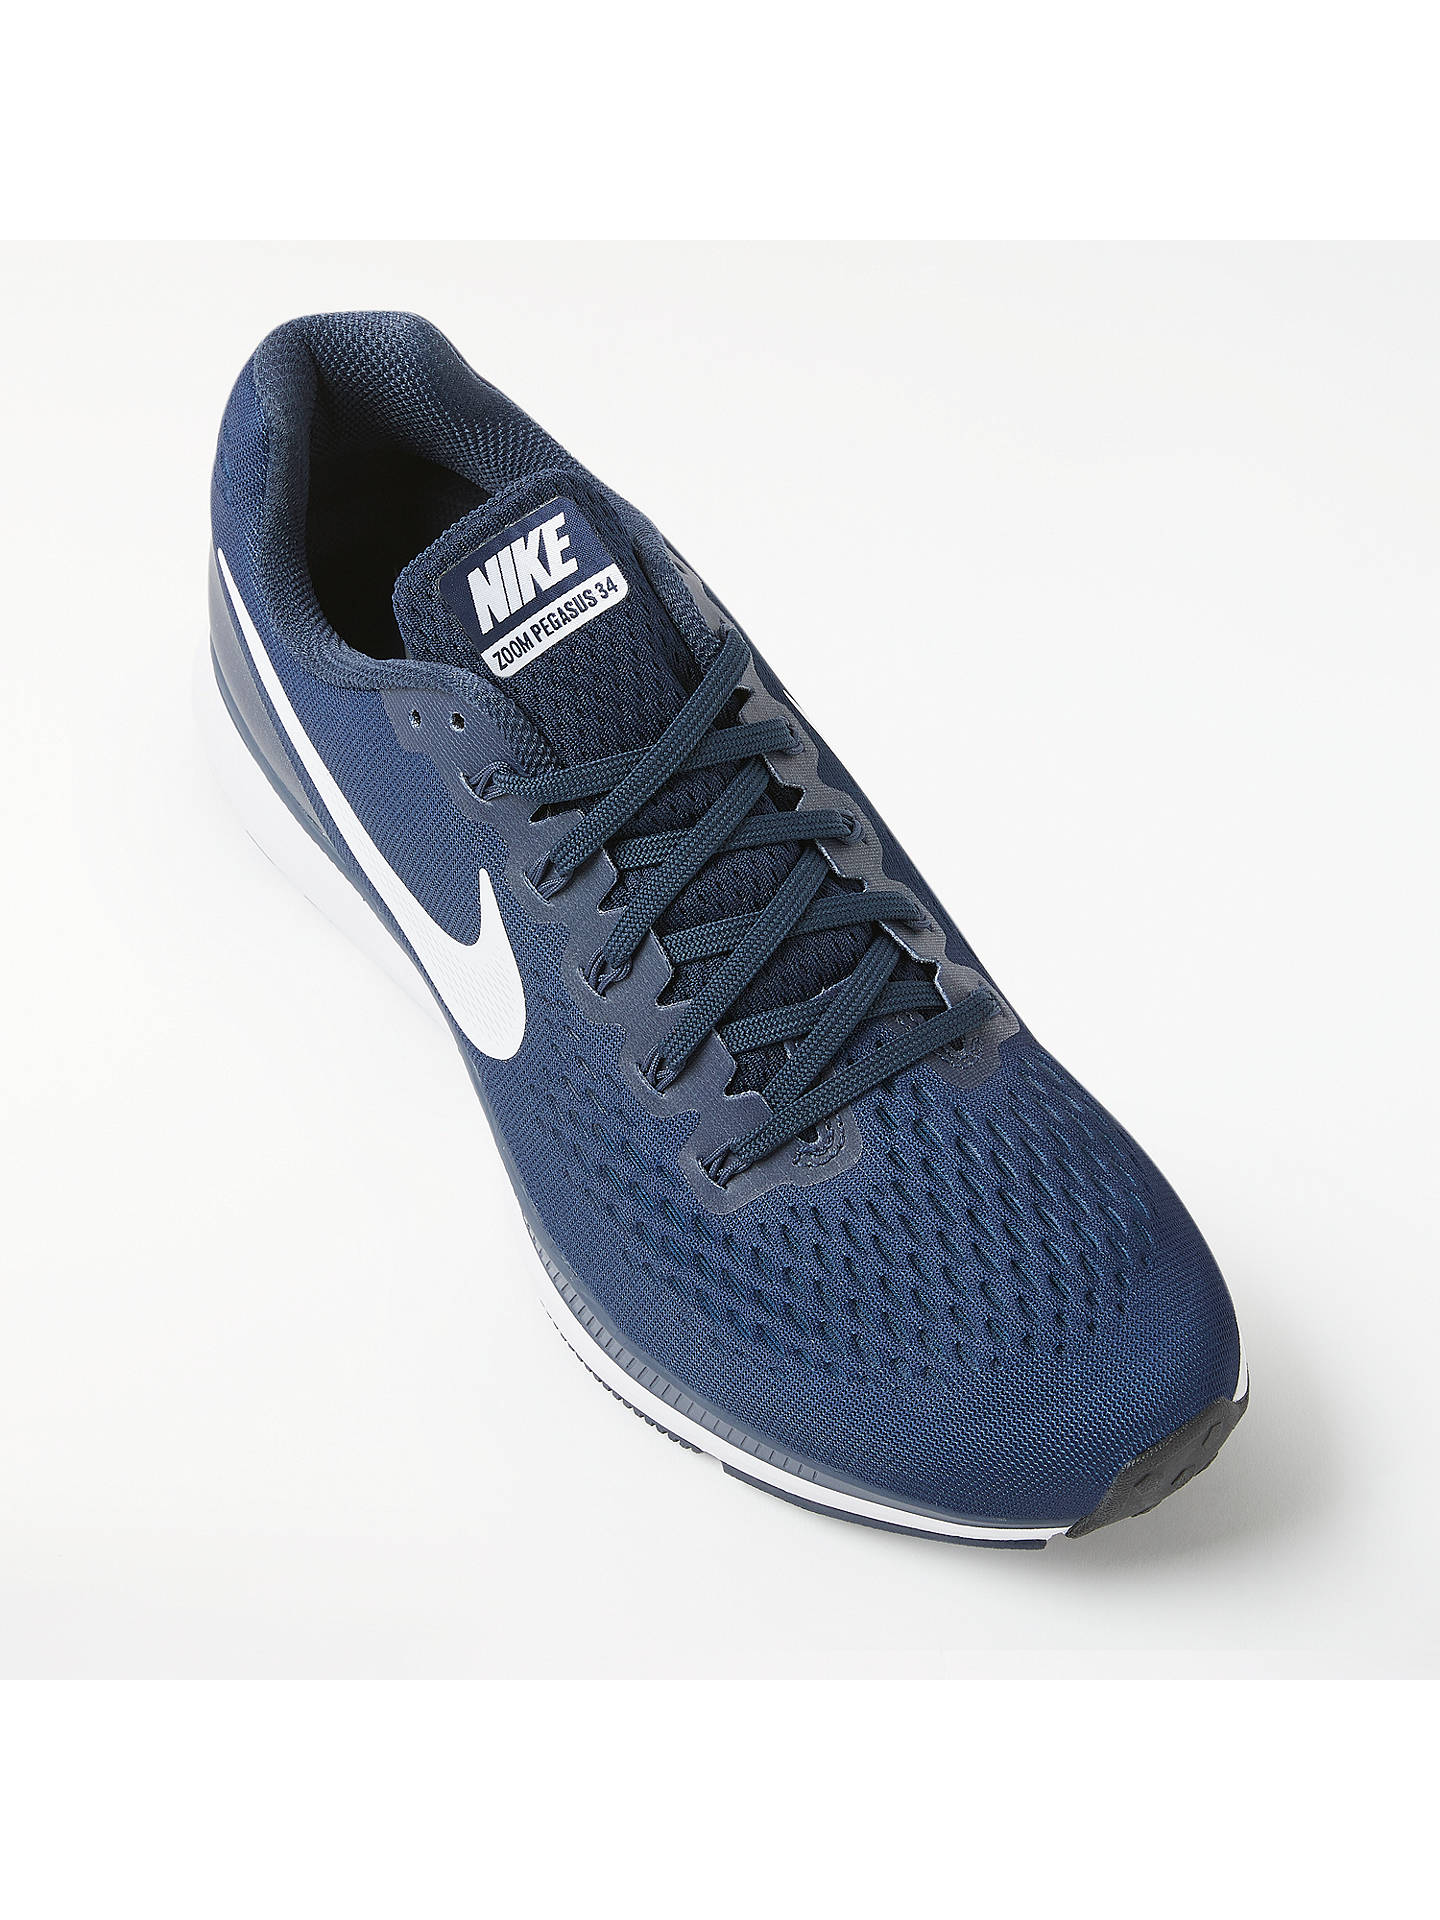 brand new a86ca fa50a ... Buy Nike Air Zoom Pegasus 34 Men s Running Shoes, Obsidian White Thunder  Blue